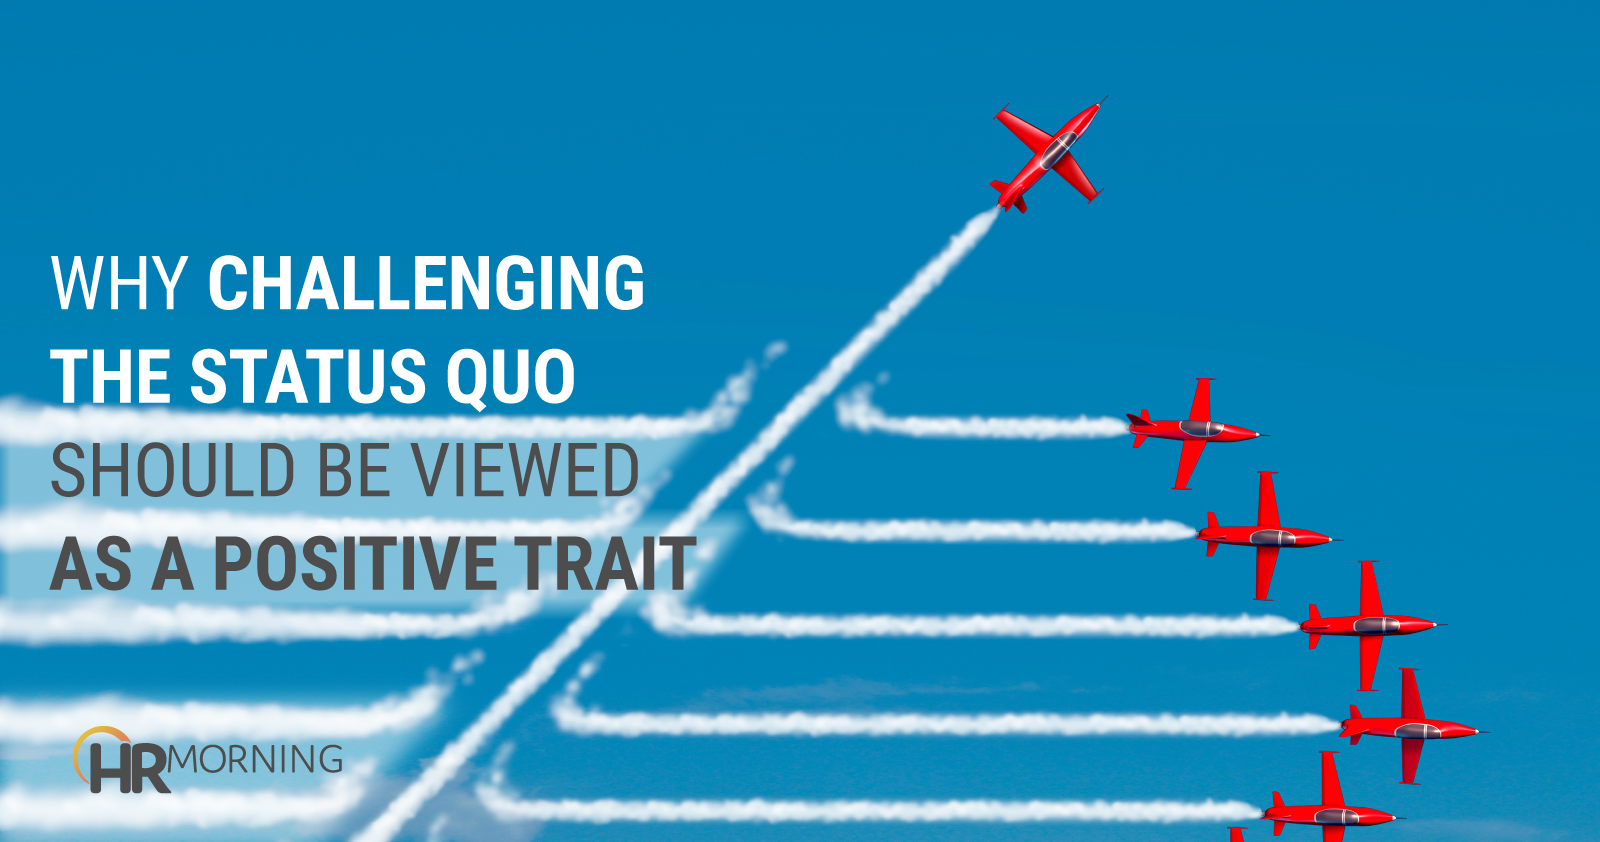 Why Challenging The Status Quo Should Be Viewed As A Positive Trait